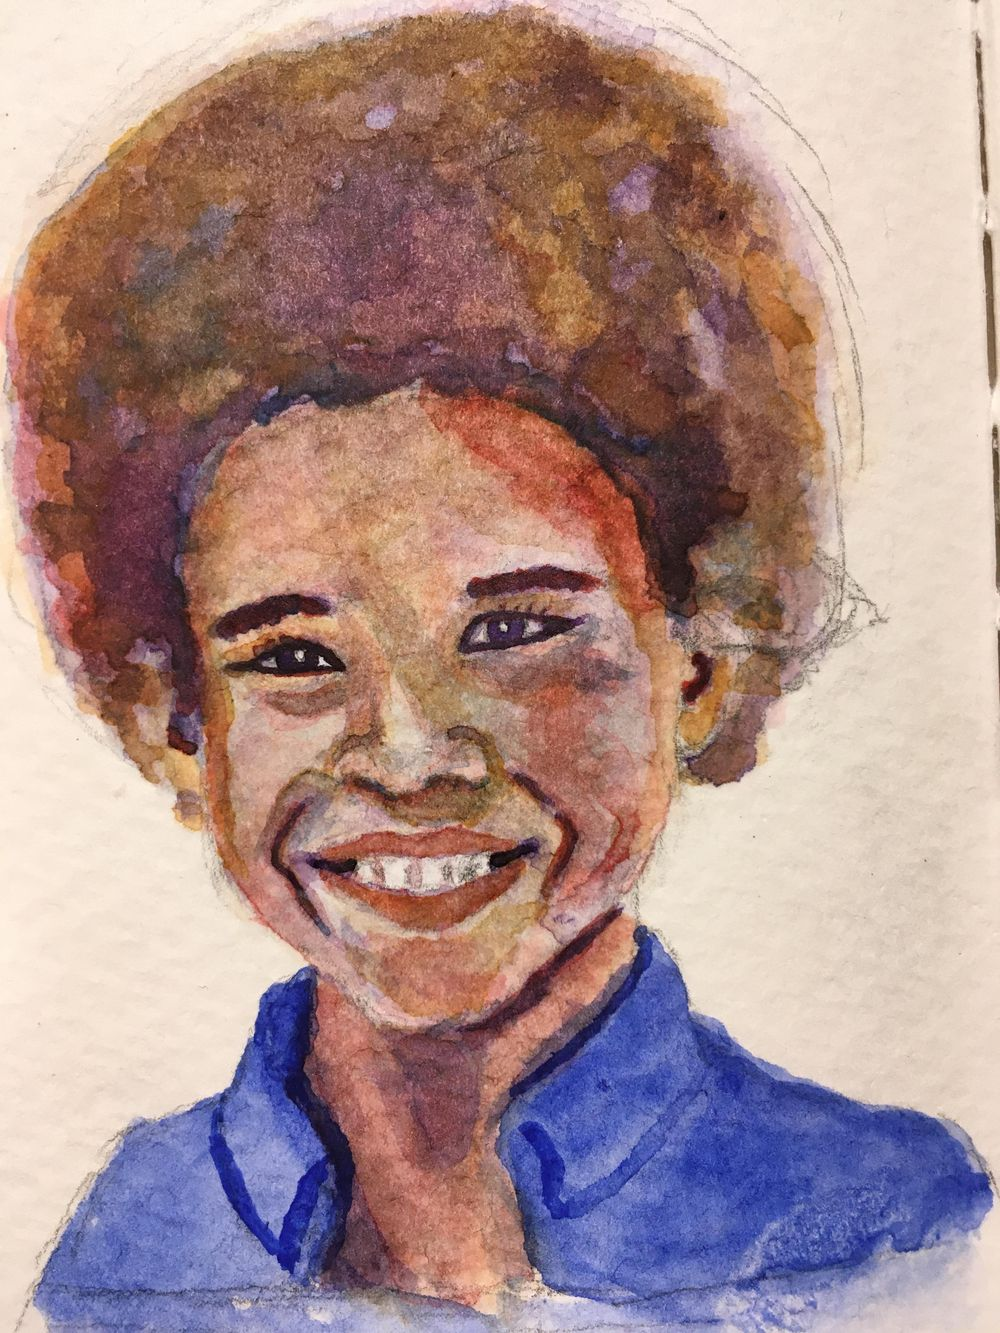 Skin Tones Assignments - image 2 - student project